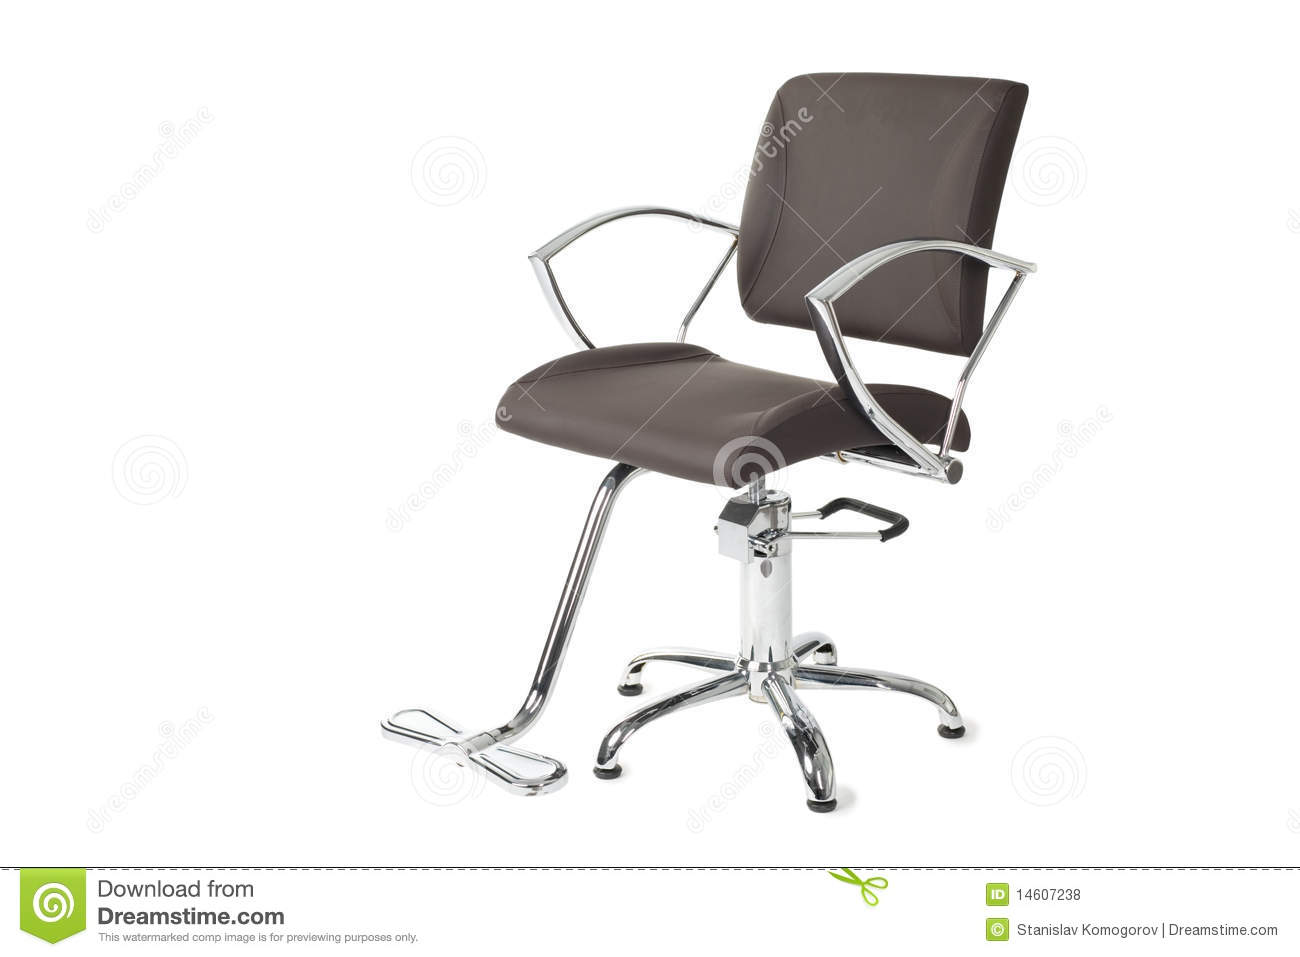 Barber chair royalty free stock photos image 14607238